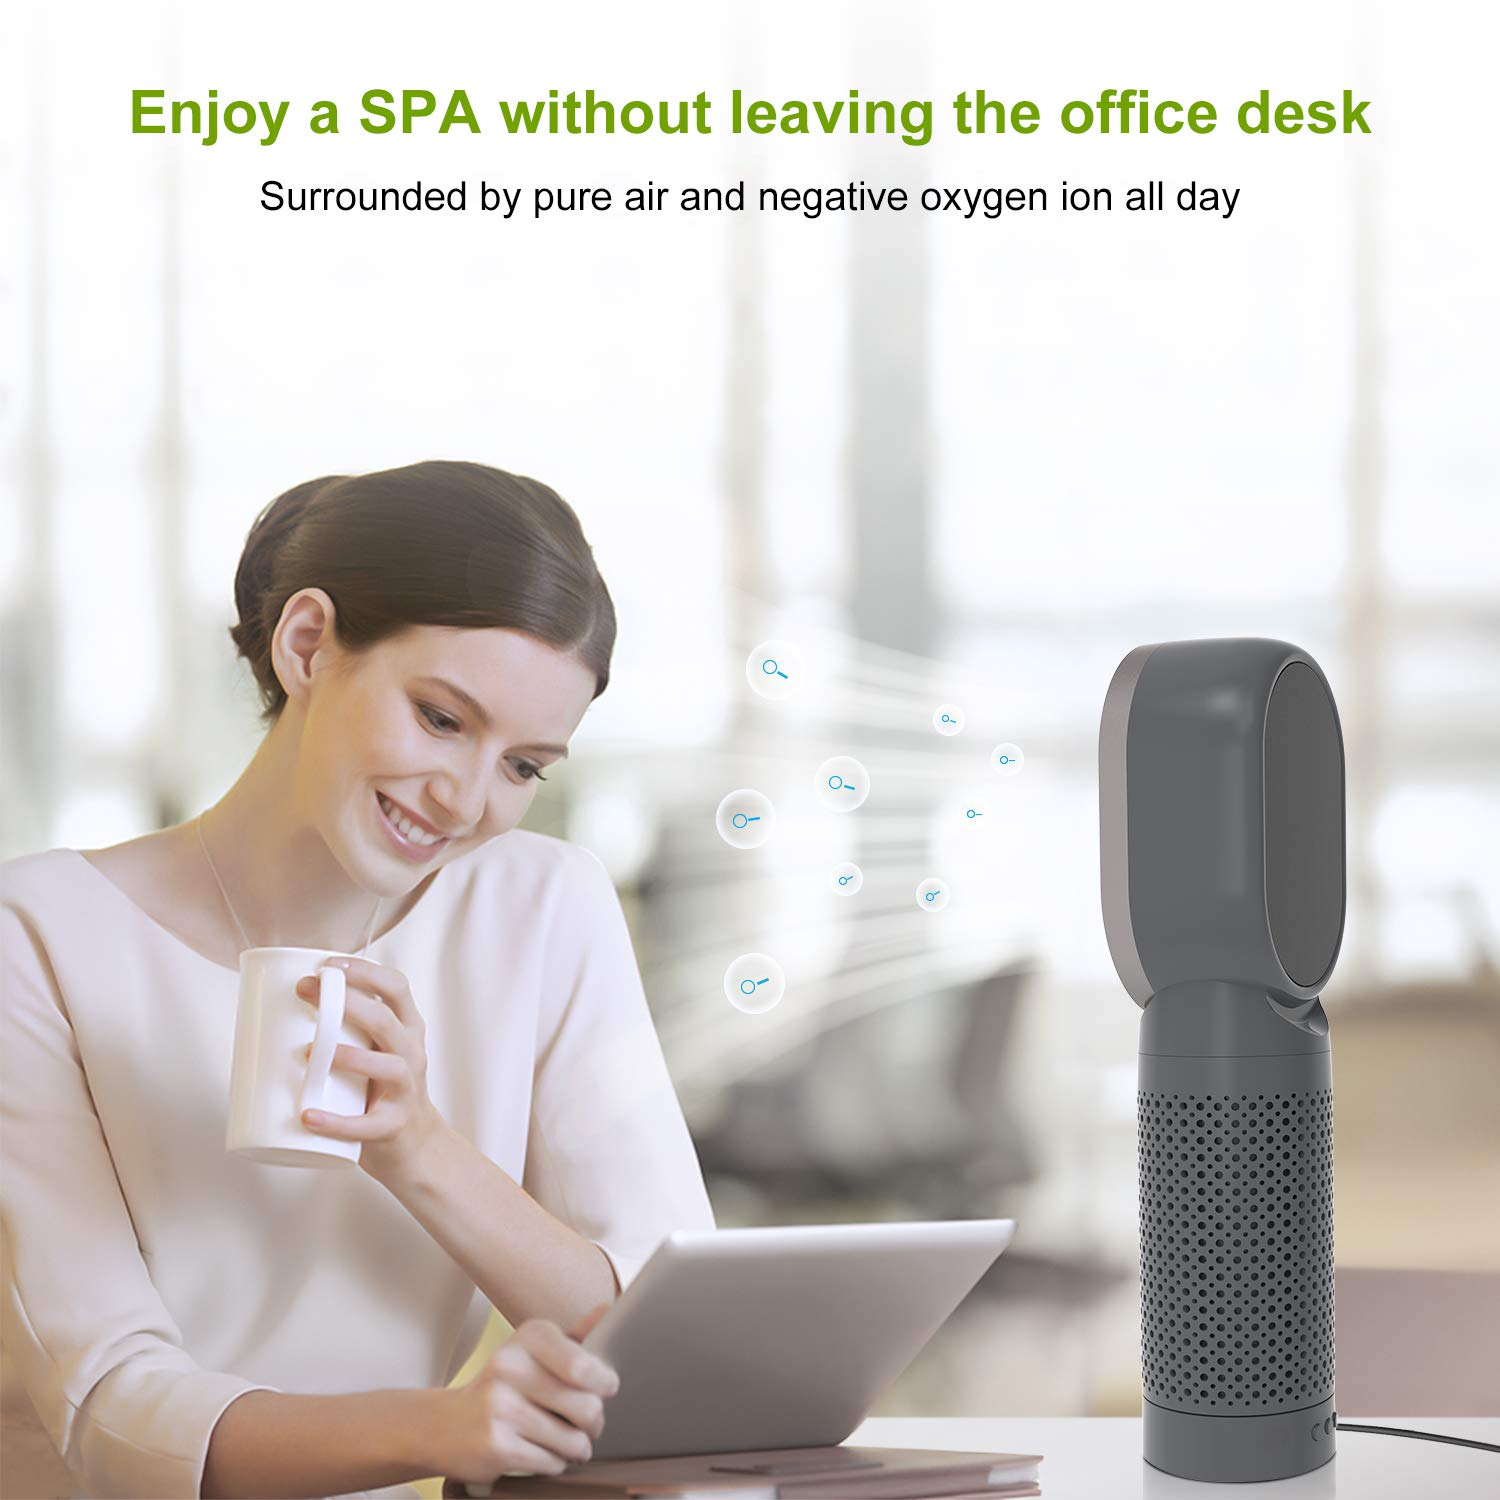 QUEENTY Desktop Air Purifier with True HEPA Filter, Personal Ioniser Air Cleaner for Allergies, Portable Negative Ion Air Eliminator for Dust, Smoke, Pollen Odor and Pet Dander (Dark Grey)